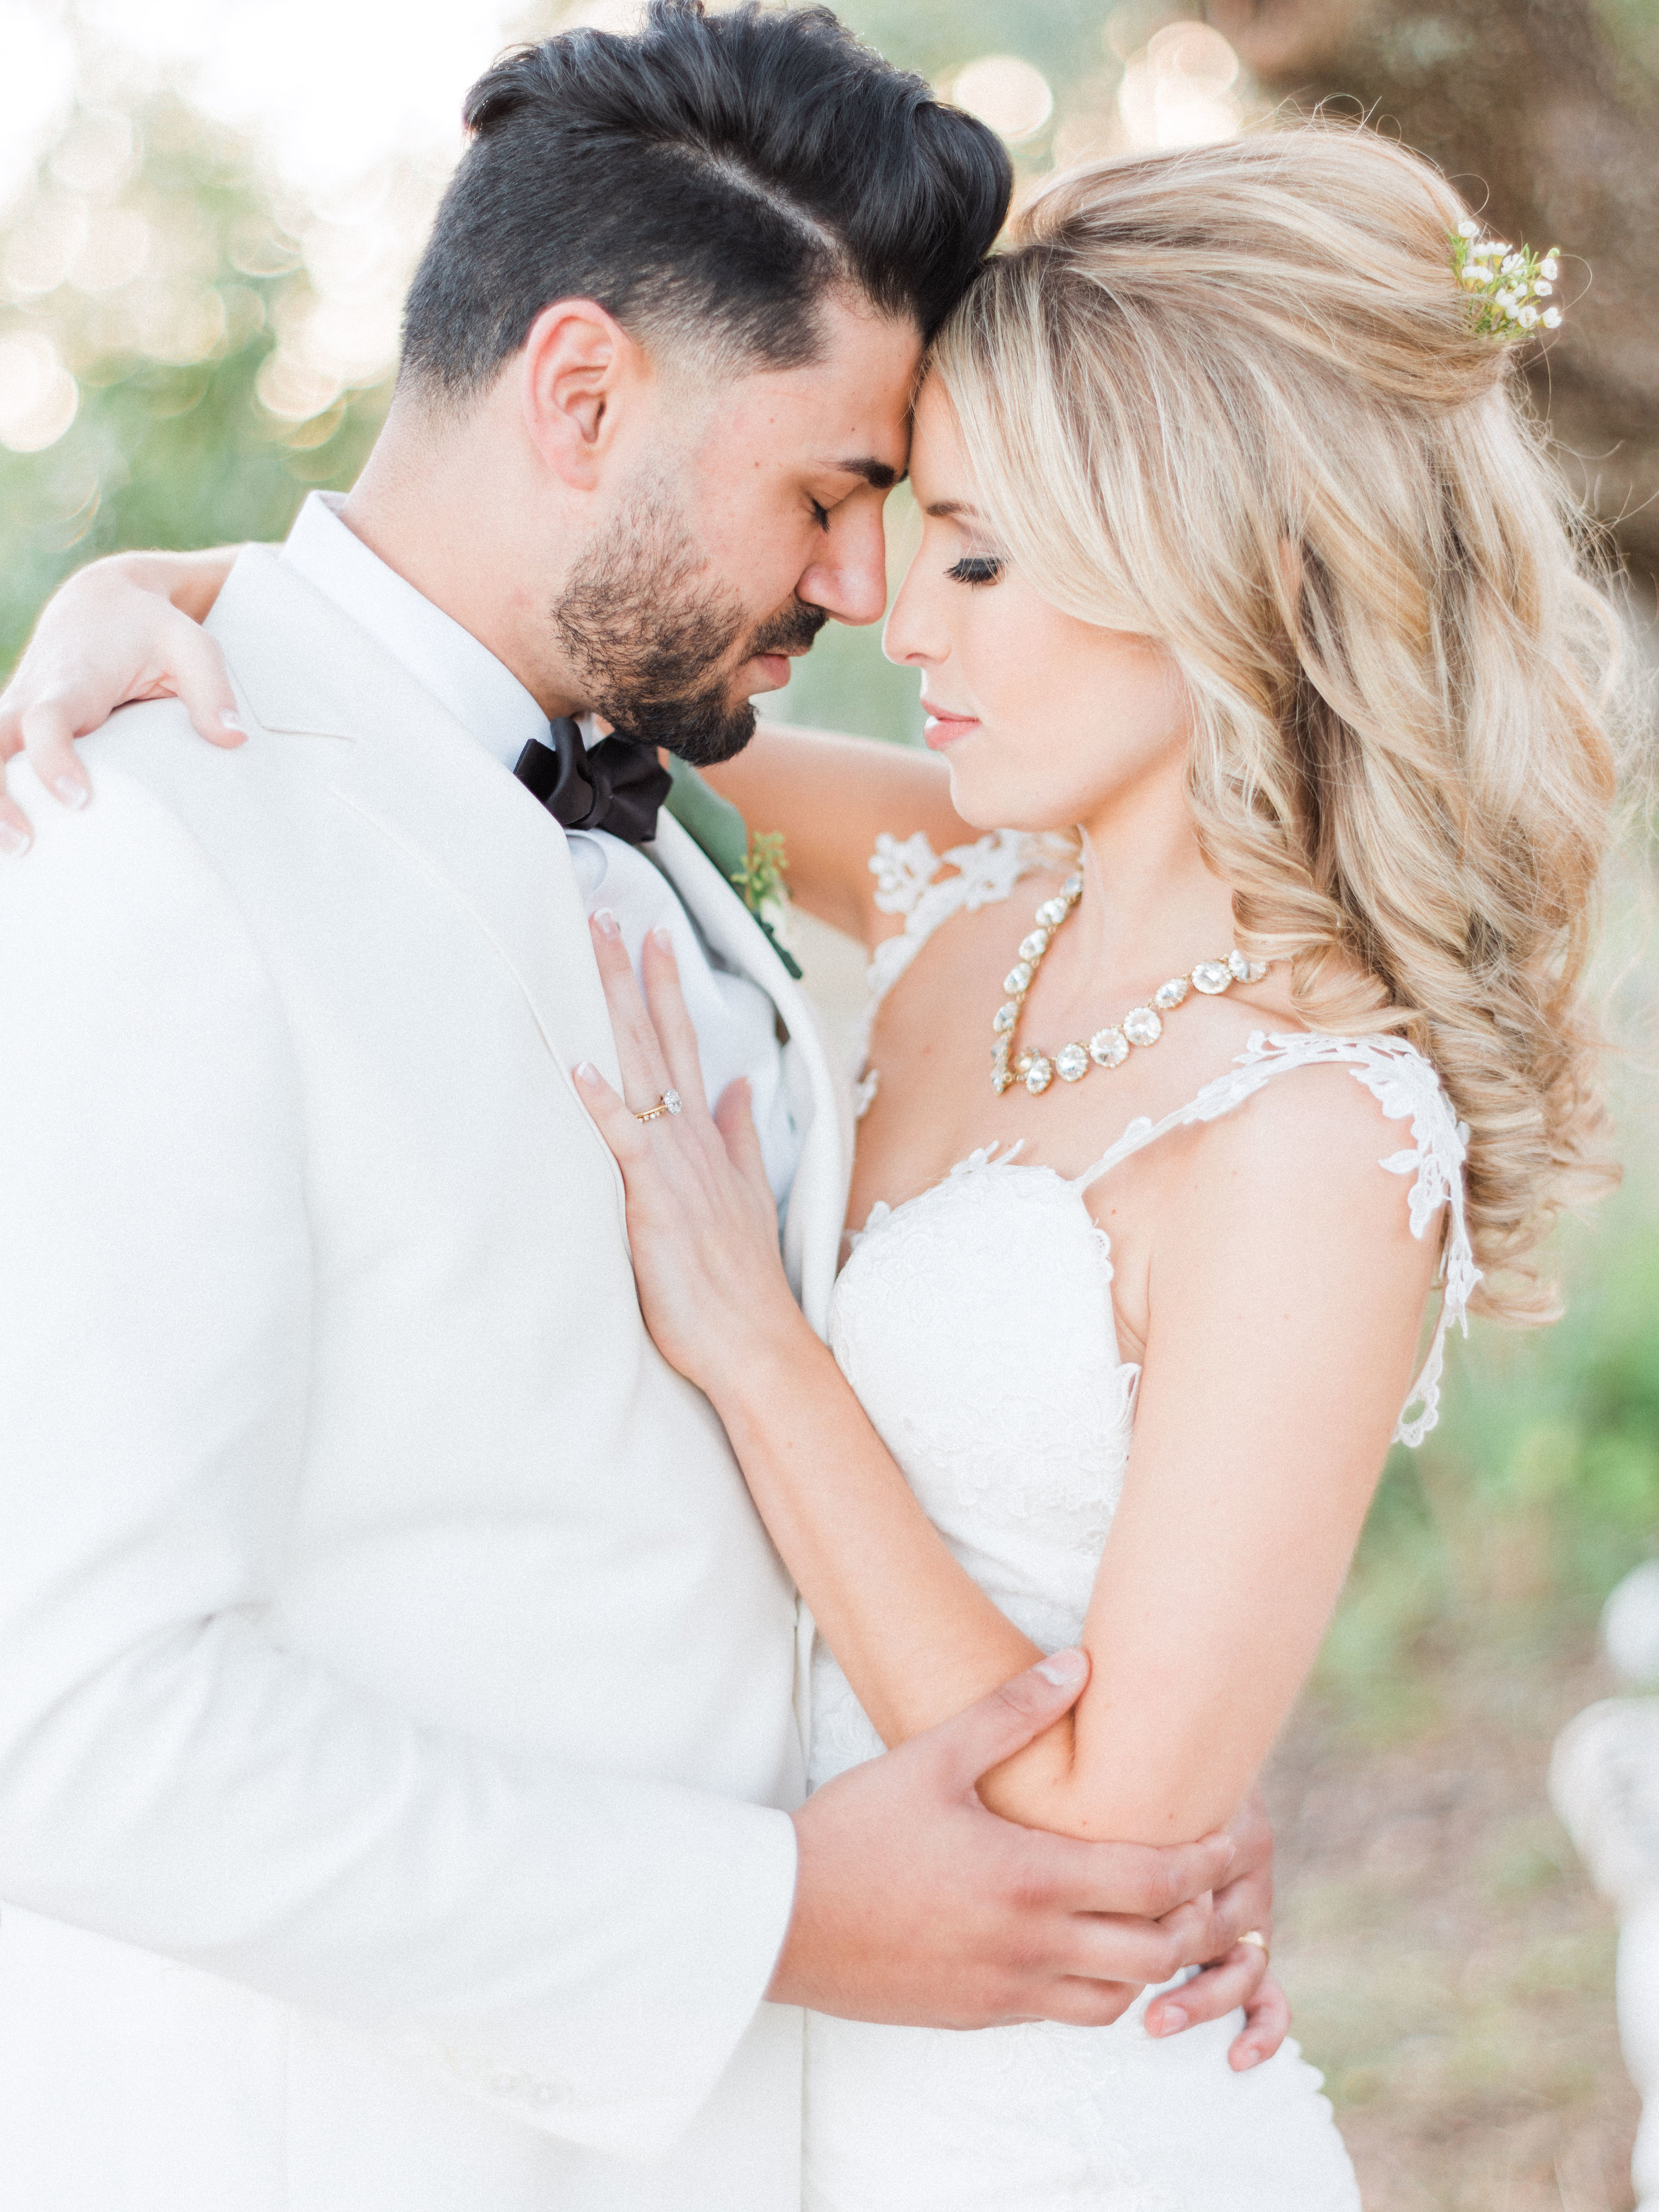 Mostly Becky is the reason why our wedding day was spectacular! The amount of attention Becky dedicated to every detail of our wedding saved me a lot of stress, and worry. She really has a gift in organization and event coordinating.- CamilleFlorida 2018 - Planned by Becky